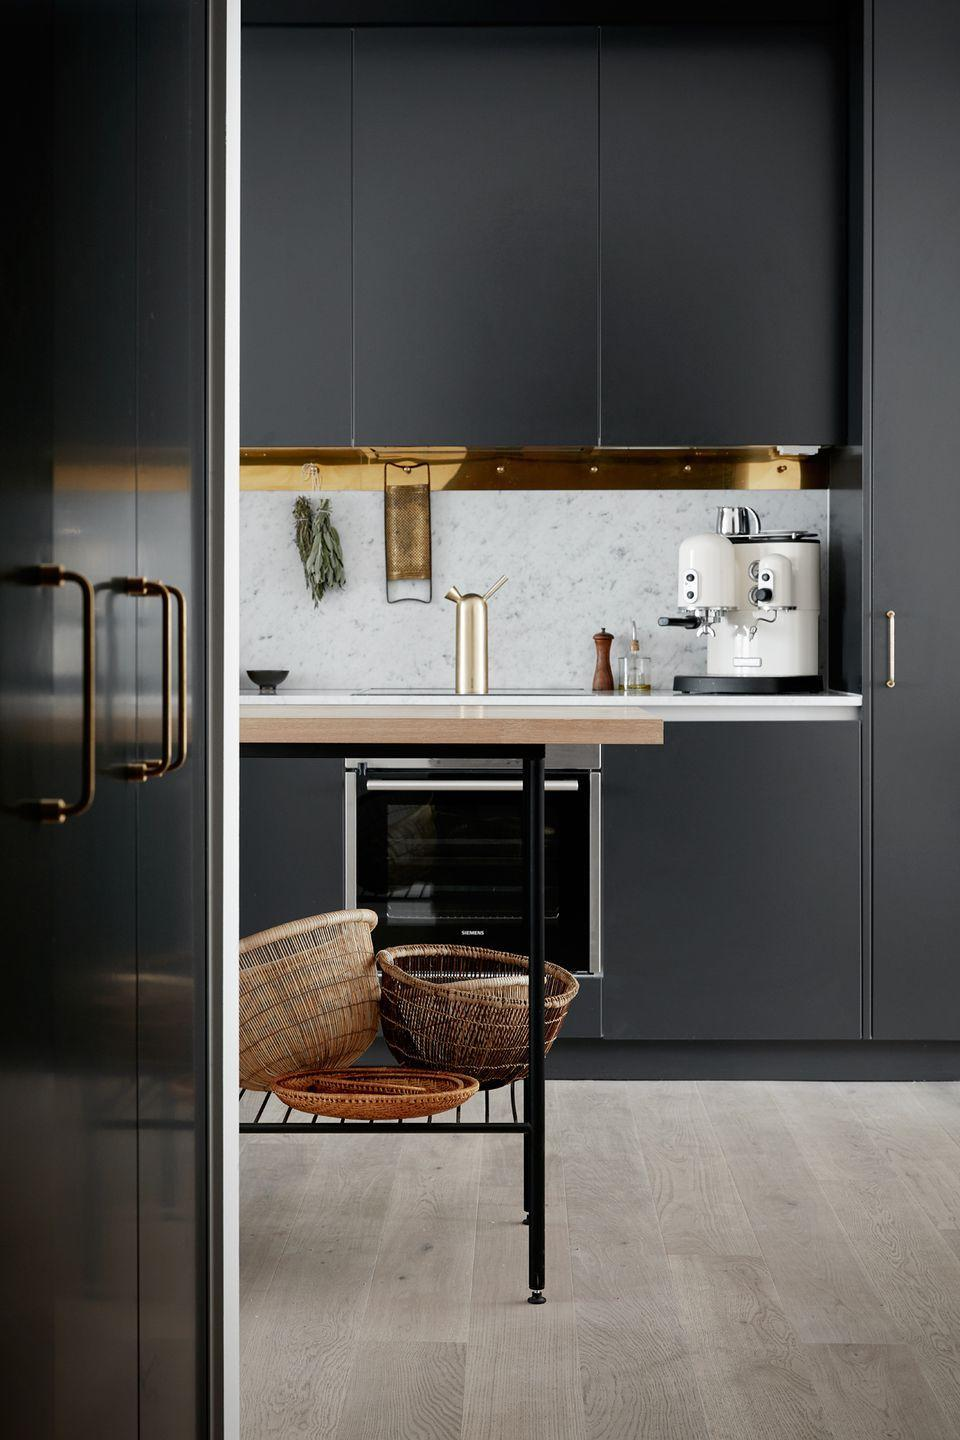 <p>There's nothing sexier than matte black when it comes to kitchen paint colors. Except, that is, when you cover the bottom of the overhead cabinets with a gold mirrored material.</p>